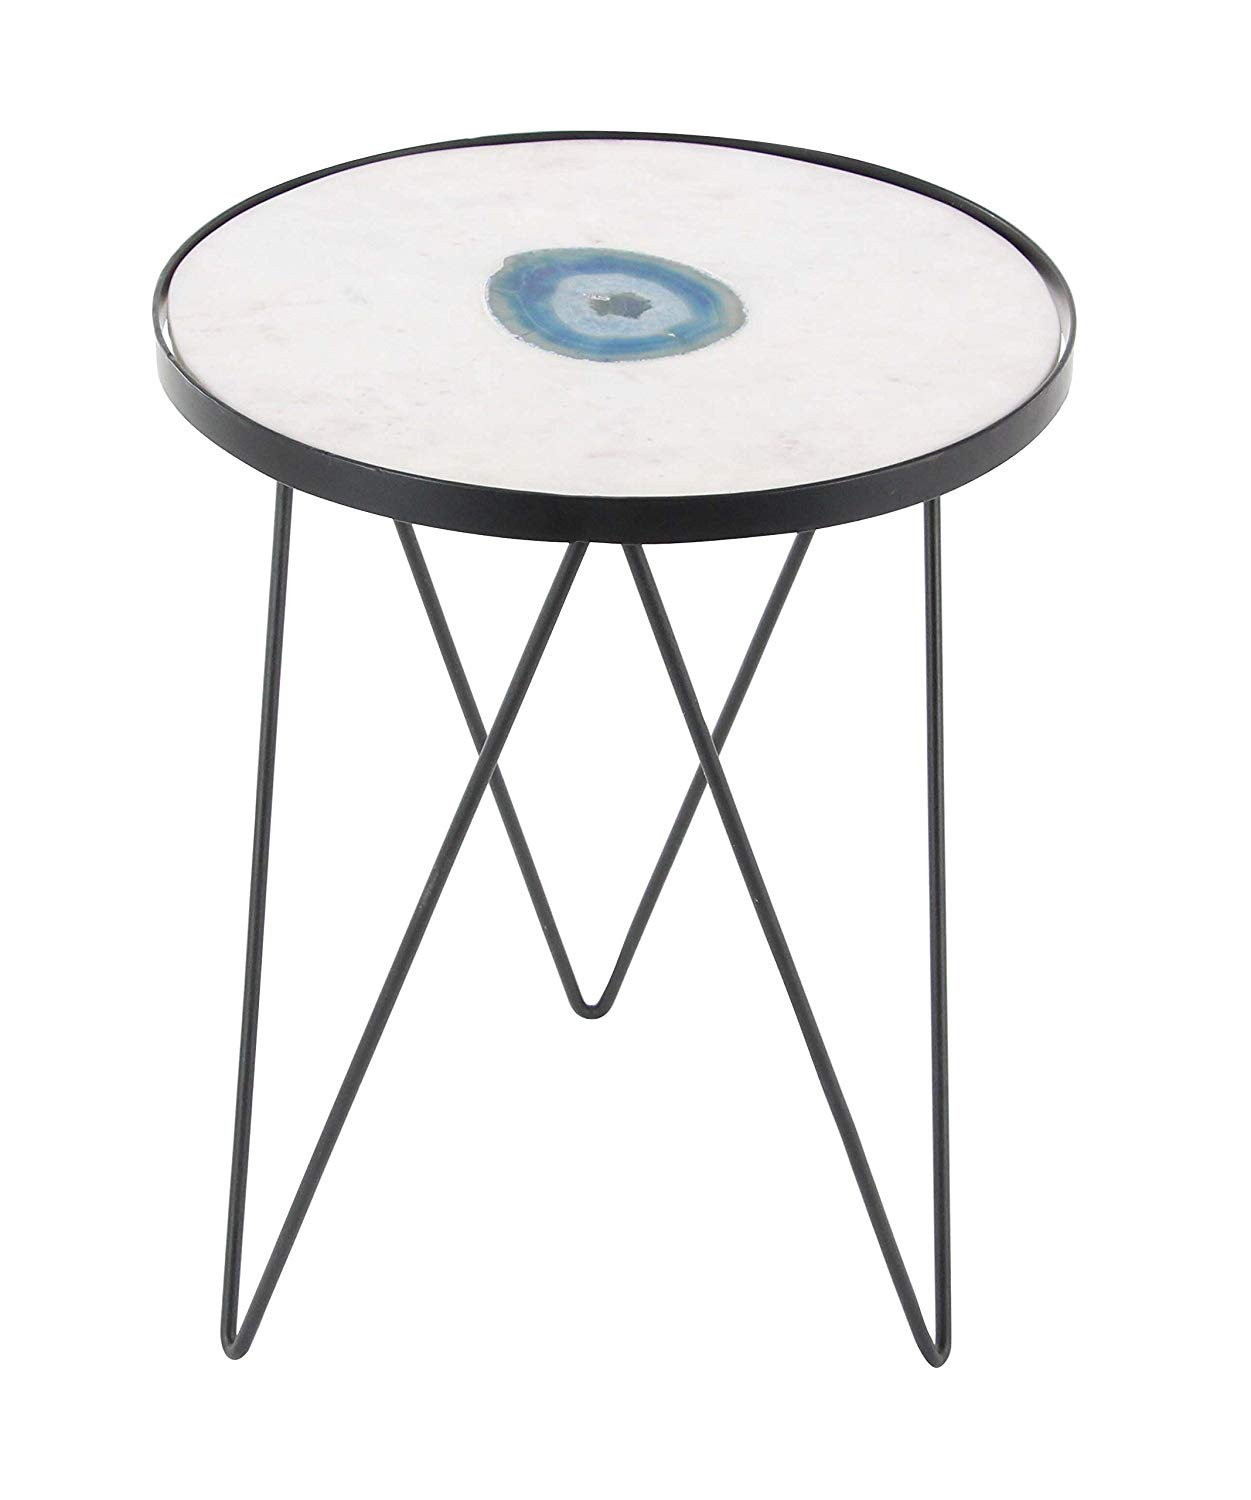 charming white marble and metal round accent table small for faux tablecloth pedestal wooden unfinished wood ideas covers decorating threshold side with full size patio furniture